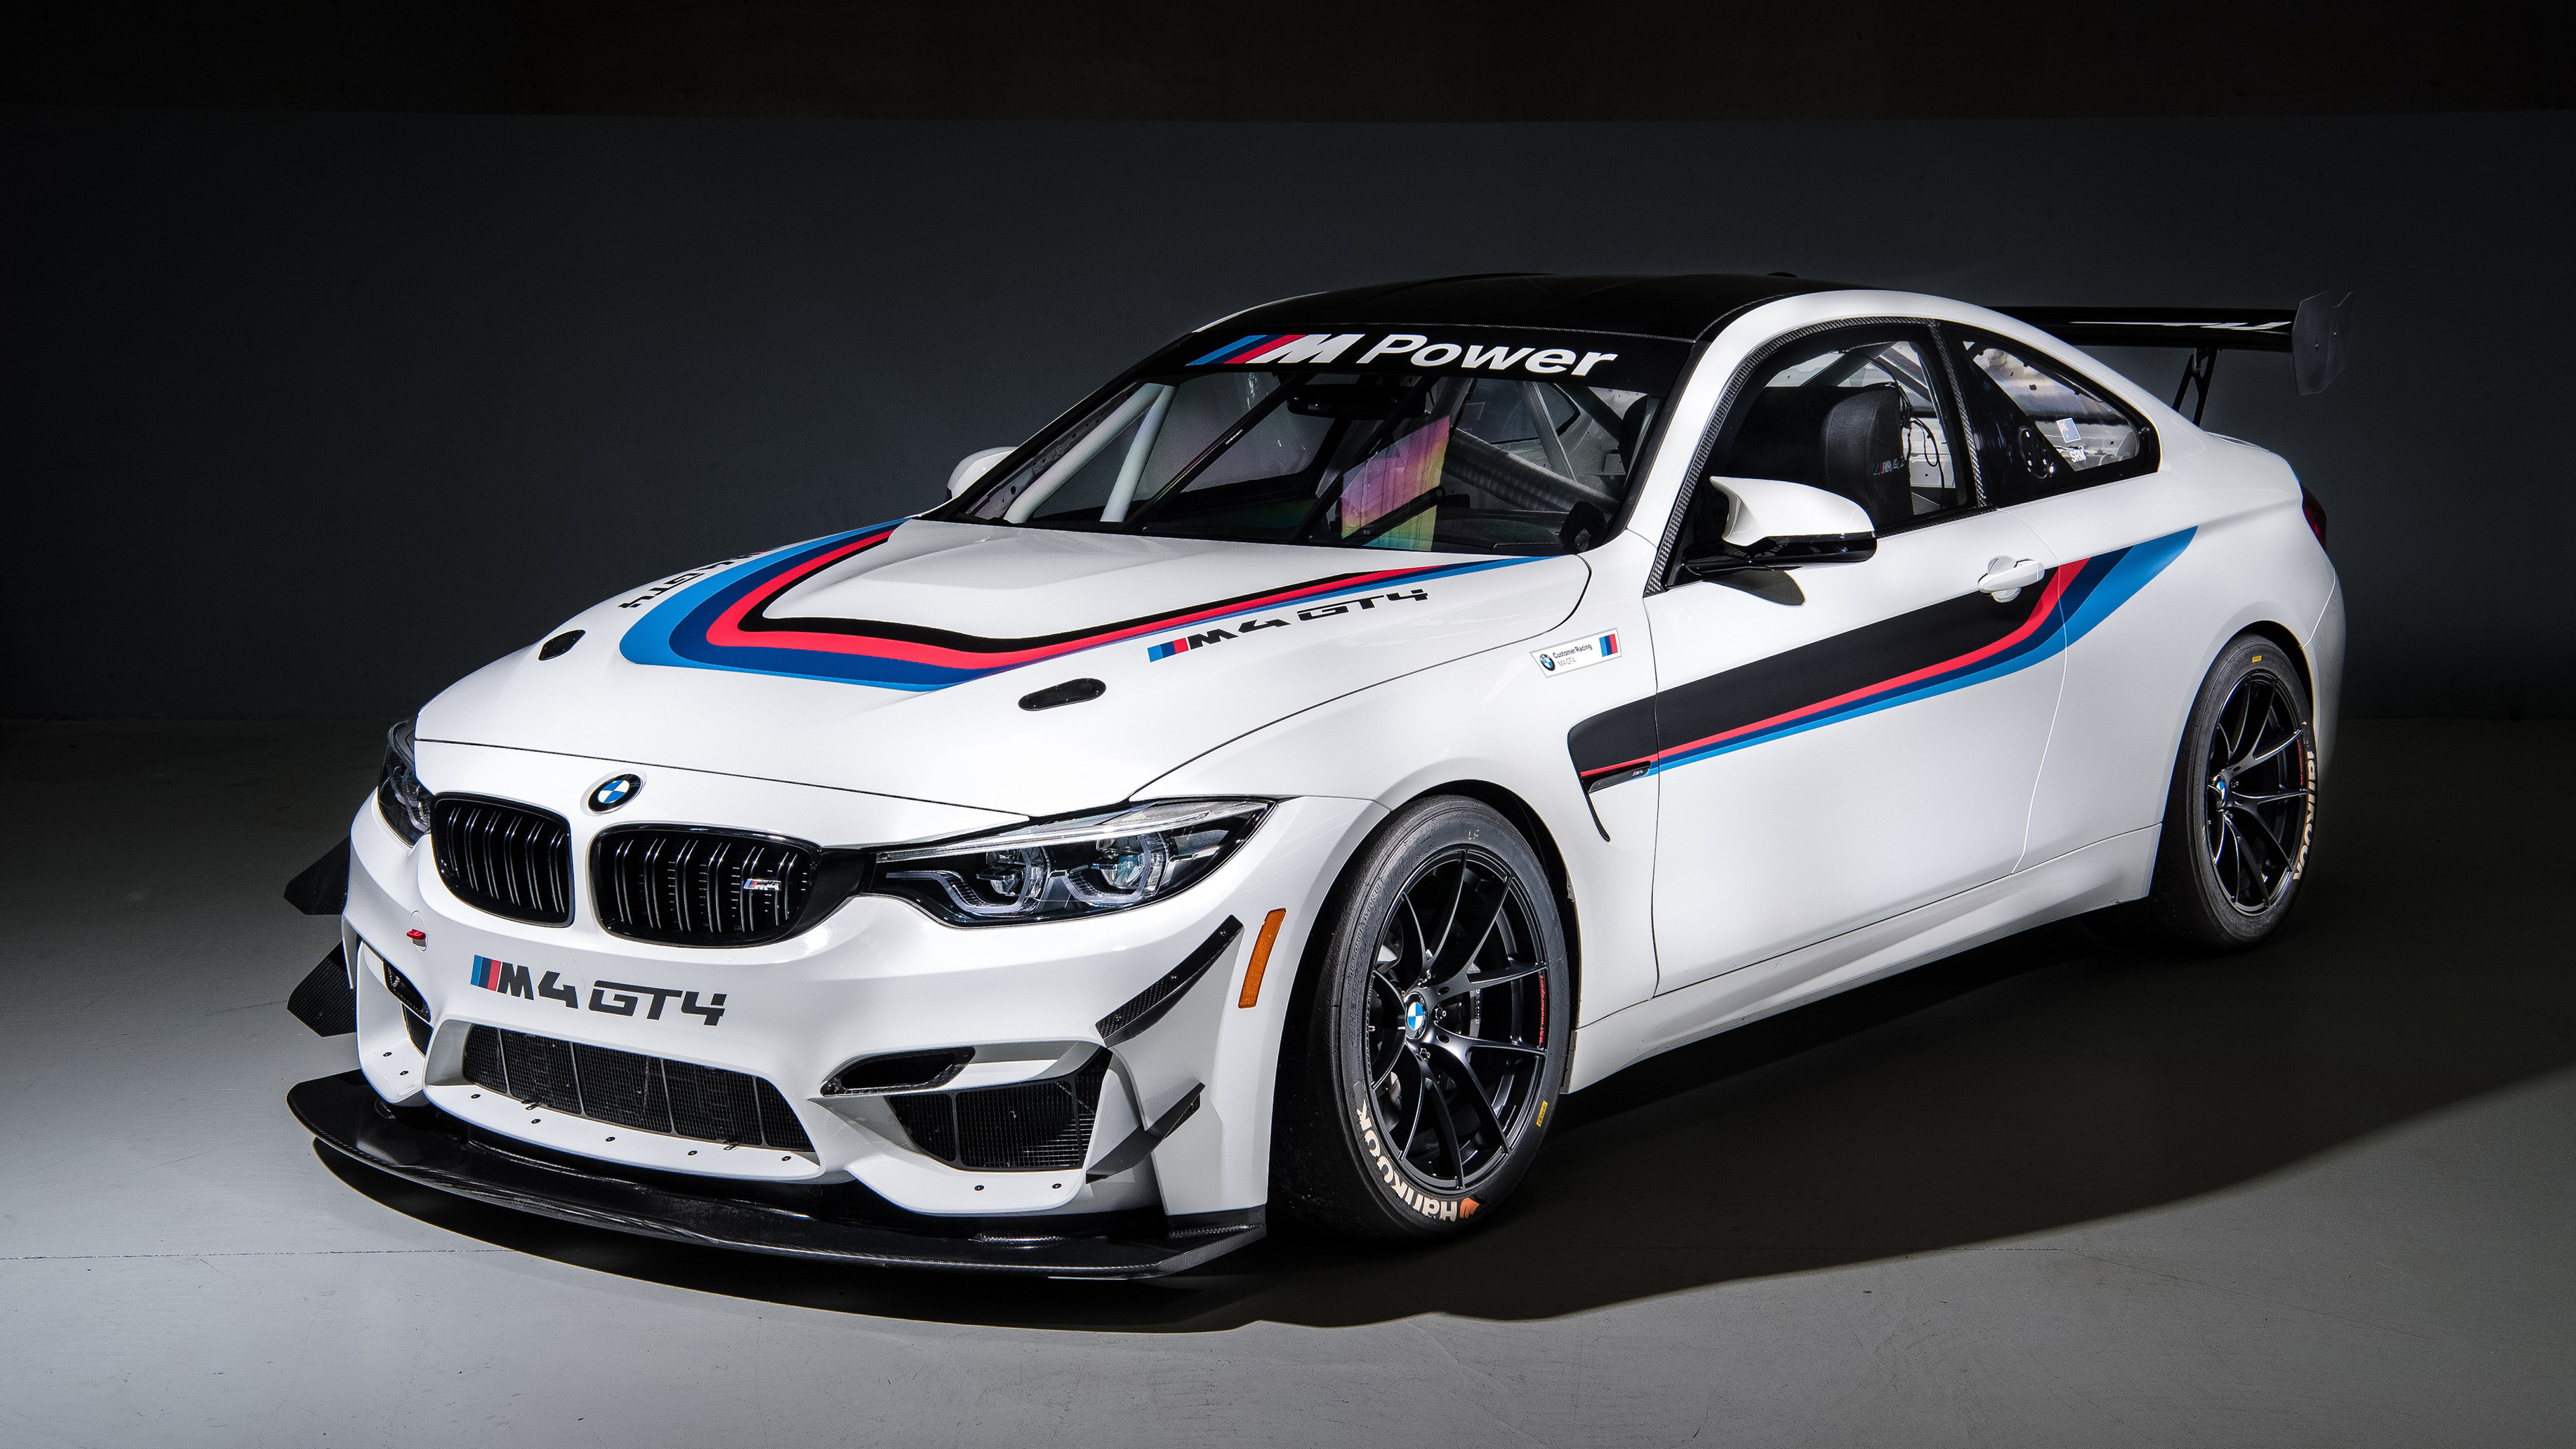 bmw m4 gt4 1539108761 - Bmw M4 Gt4 - hd-wallpapers, gt wallpapers, cars wallpapers, bmw wallpapers, bmw m4 wallpapers, 4k-wallpapers, 2018 cars wallpapers